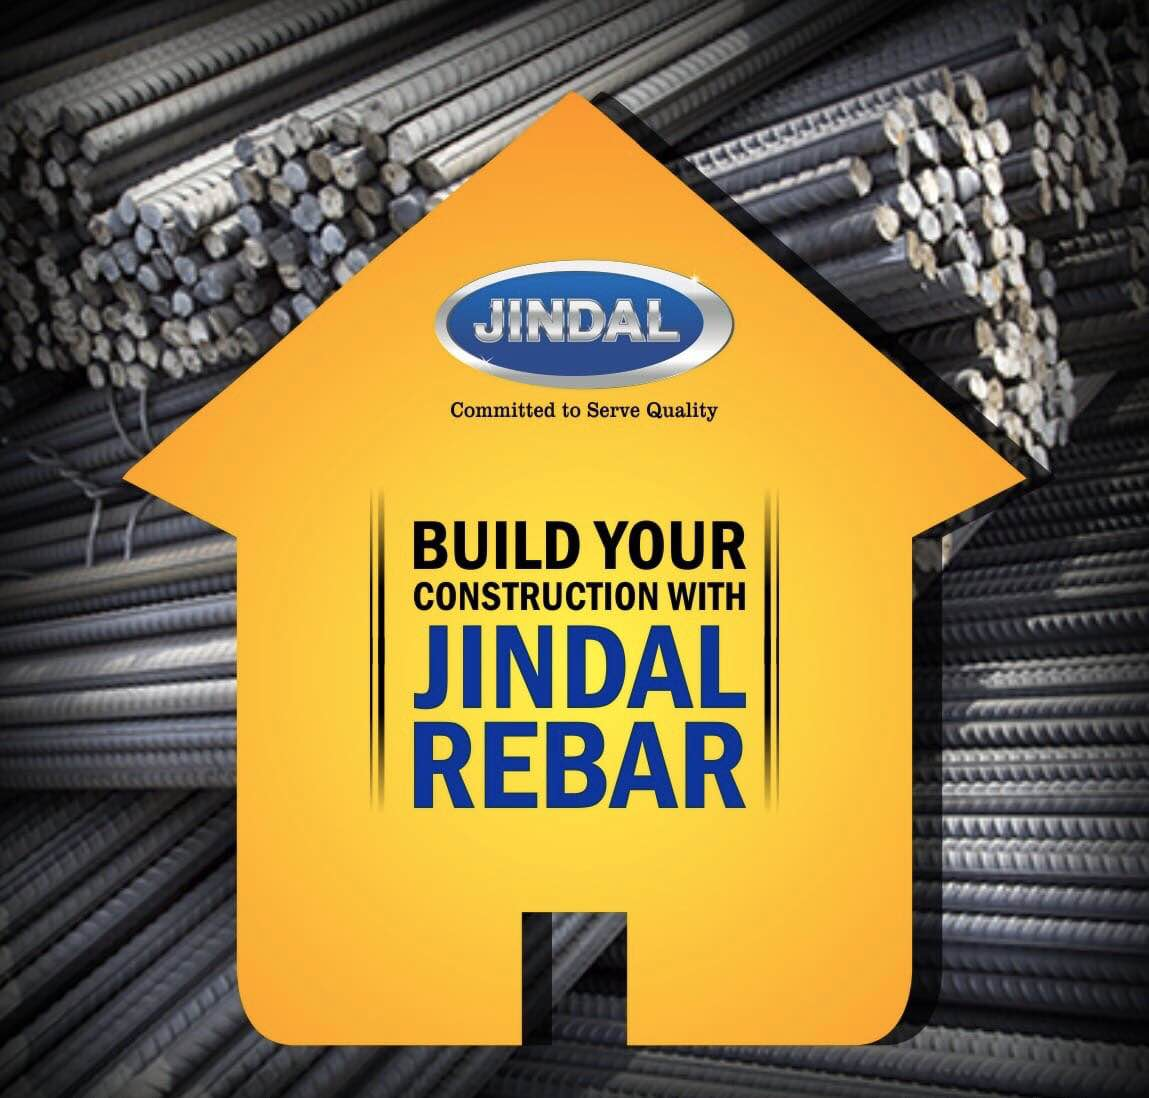 jindal steel price list Jinda